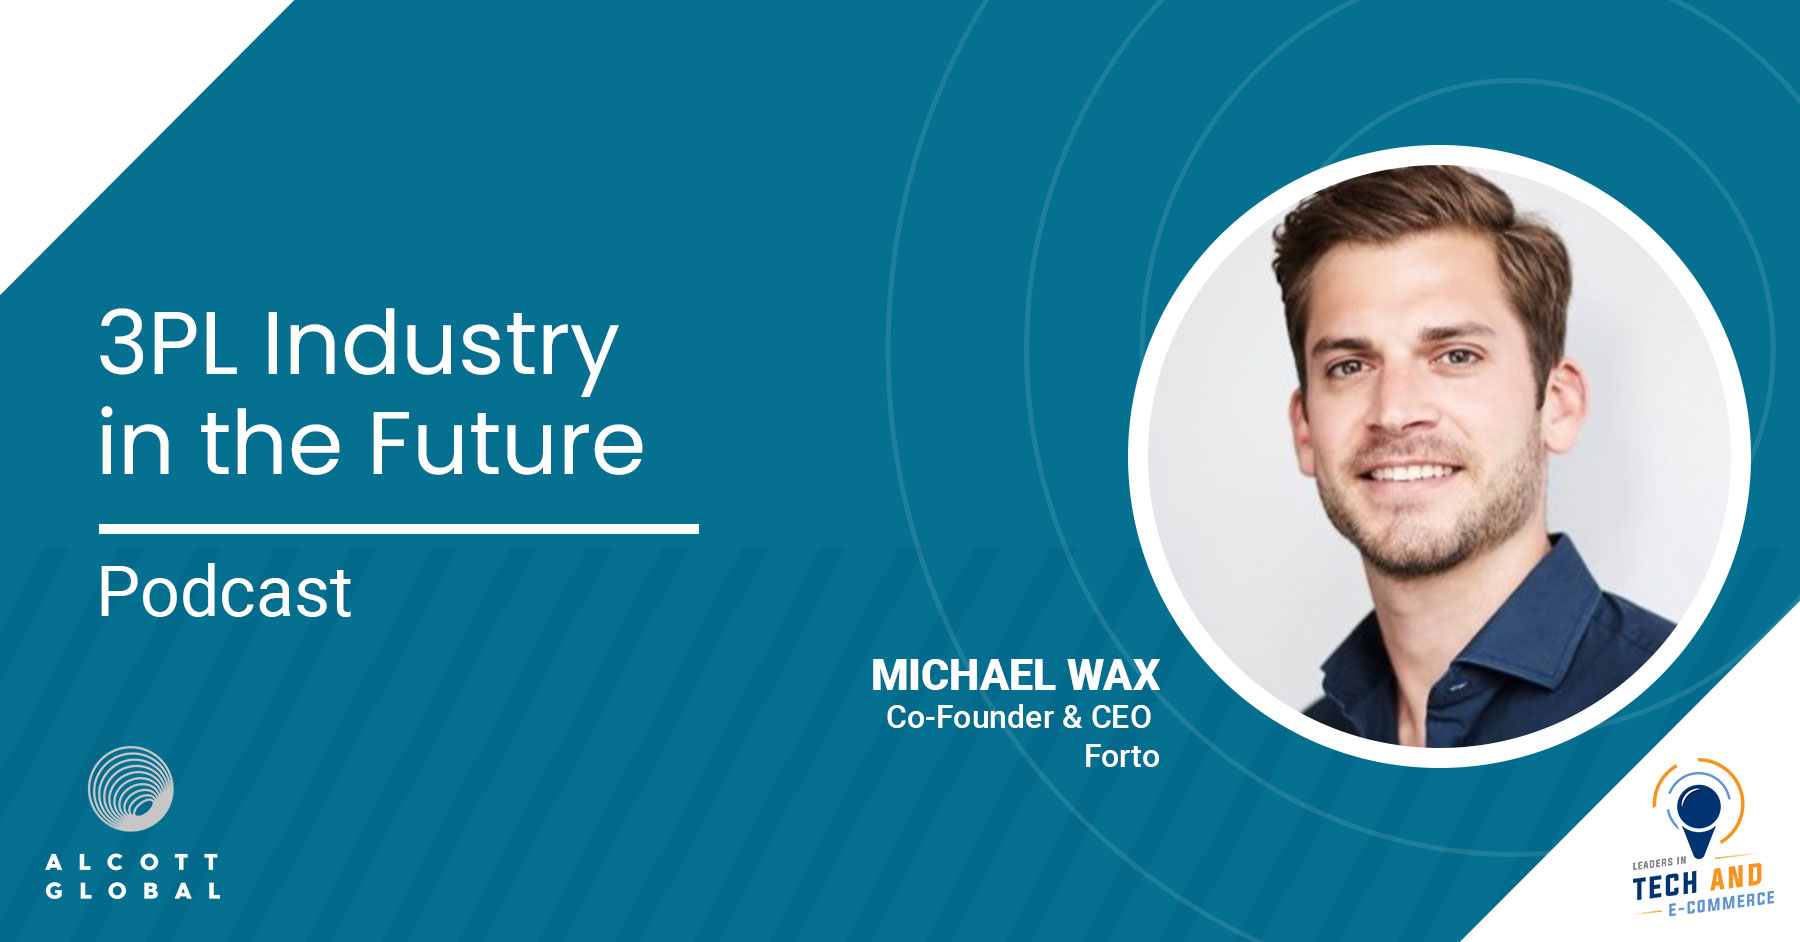 3PL Industry in the Future with Michael Wax Co-Founder and CEO of Forto Featured Image